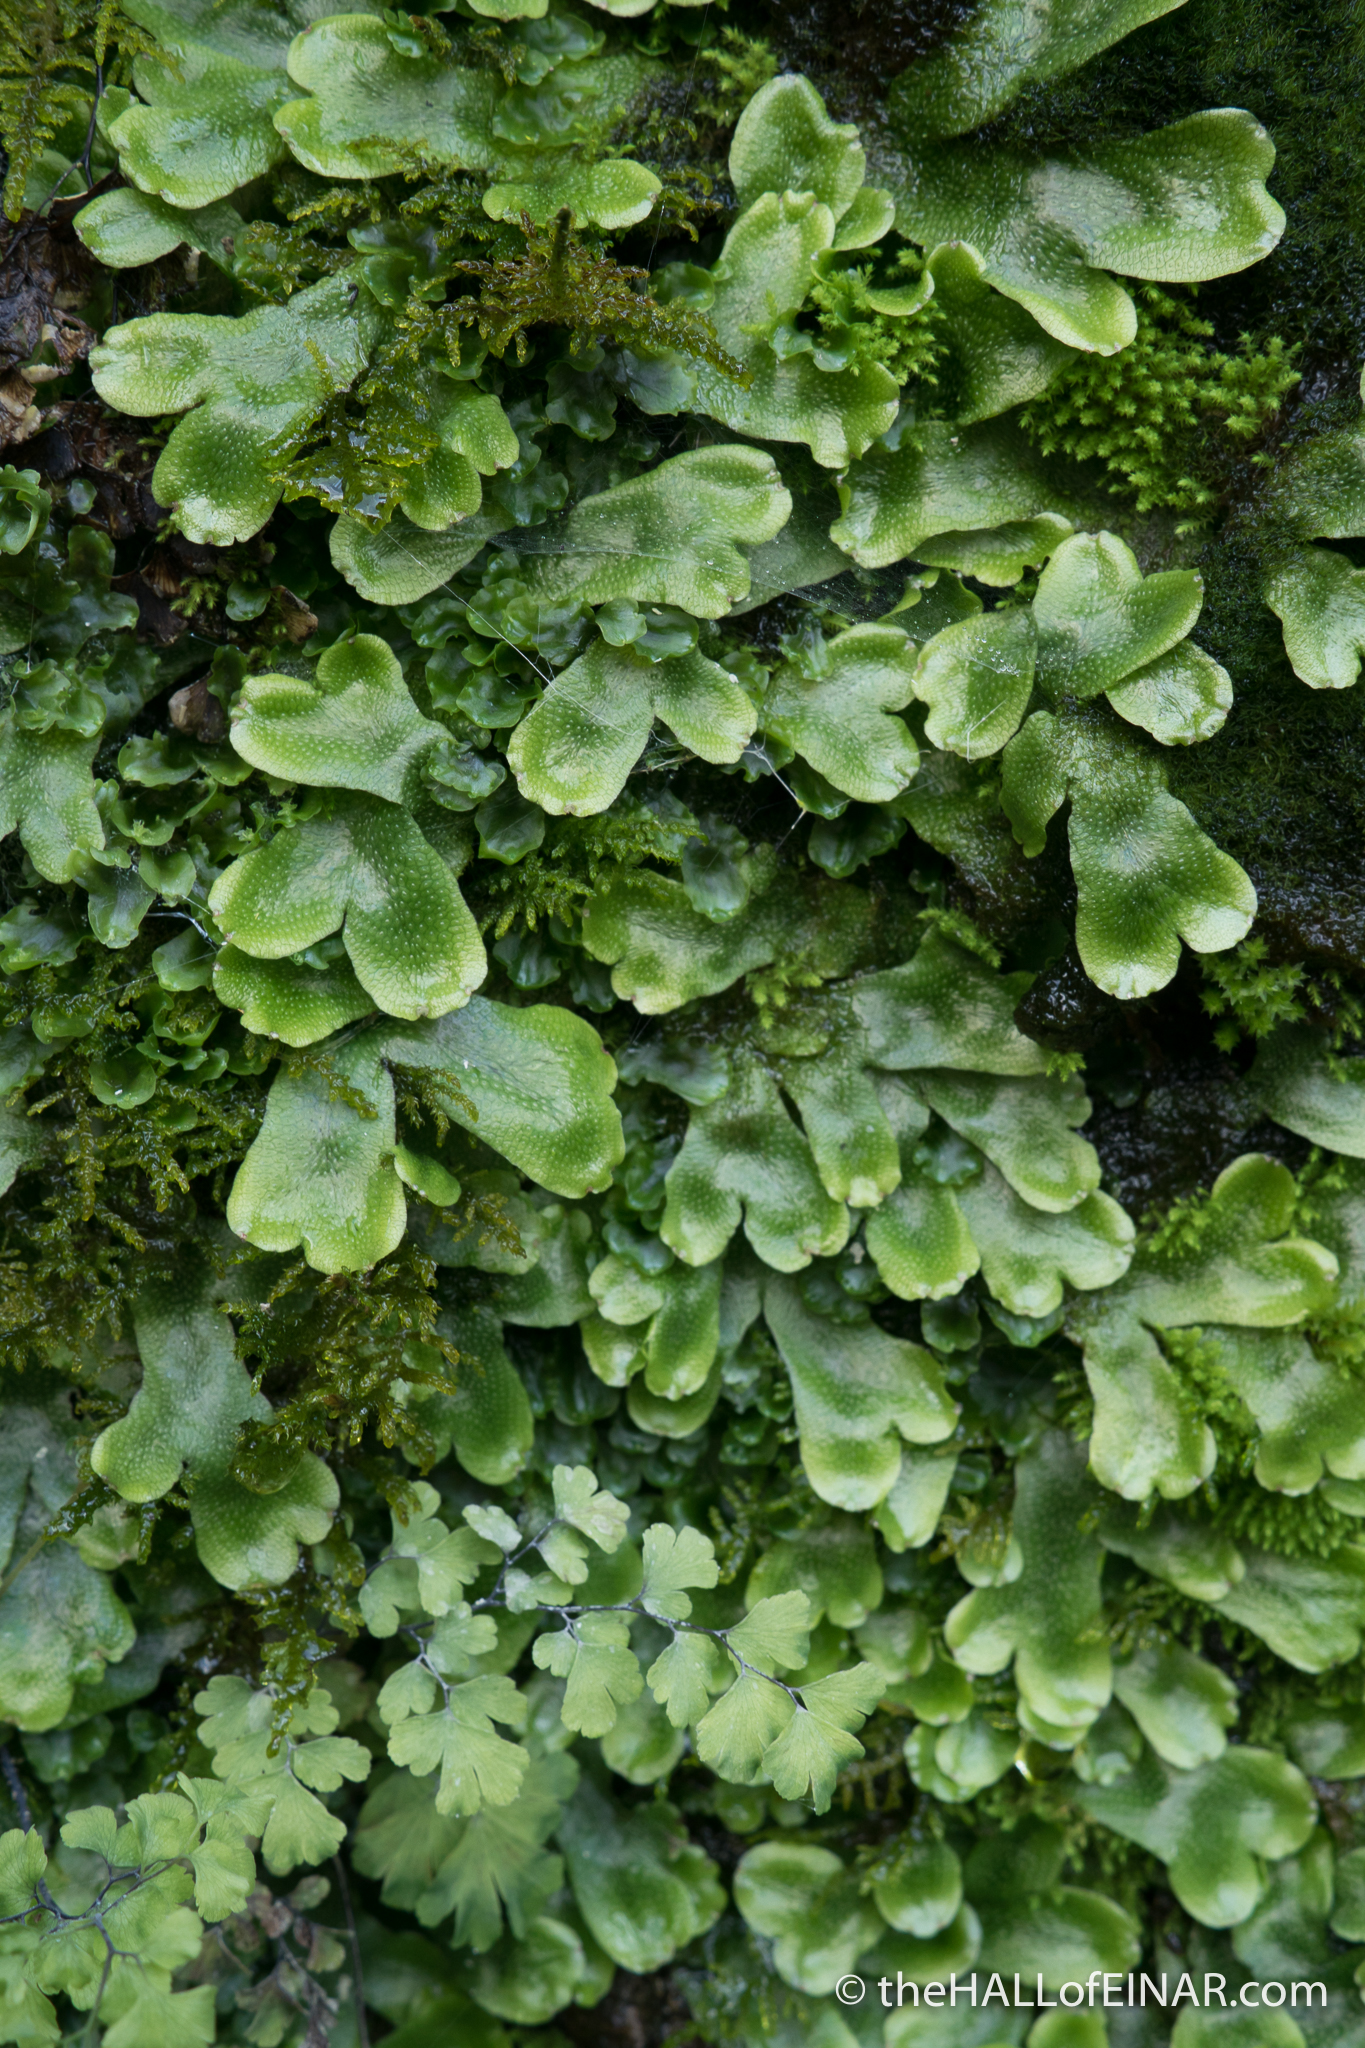 Liverwort - The Hall of Einar - photograph (c) David Bailey (not the)